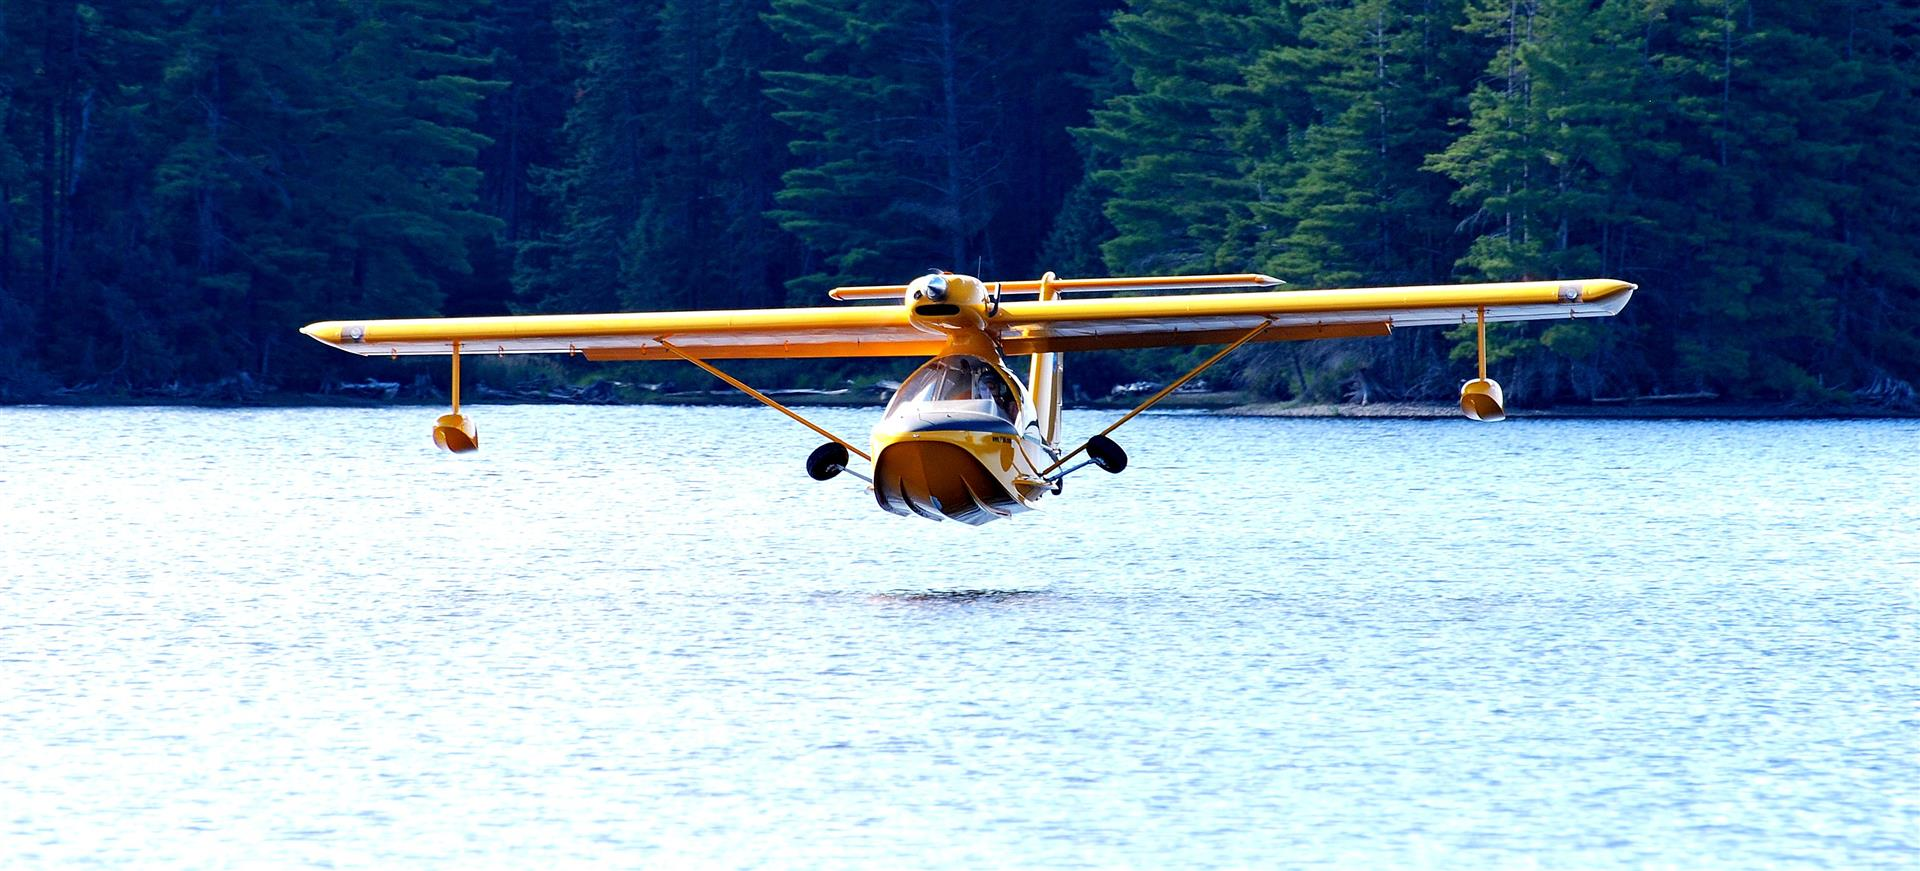 Mark Robidoux lands his Aeroprakt amphib on the lake. Photo by Jackie Robidoux, @j_robidoux.